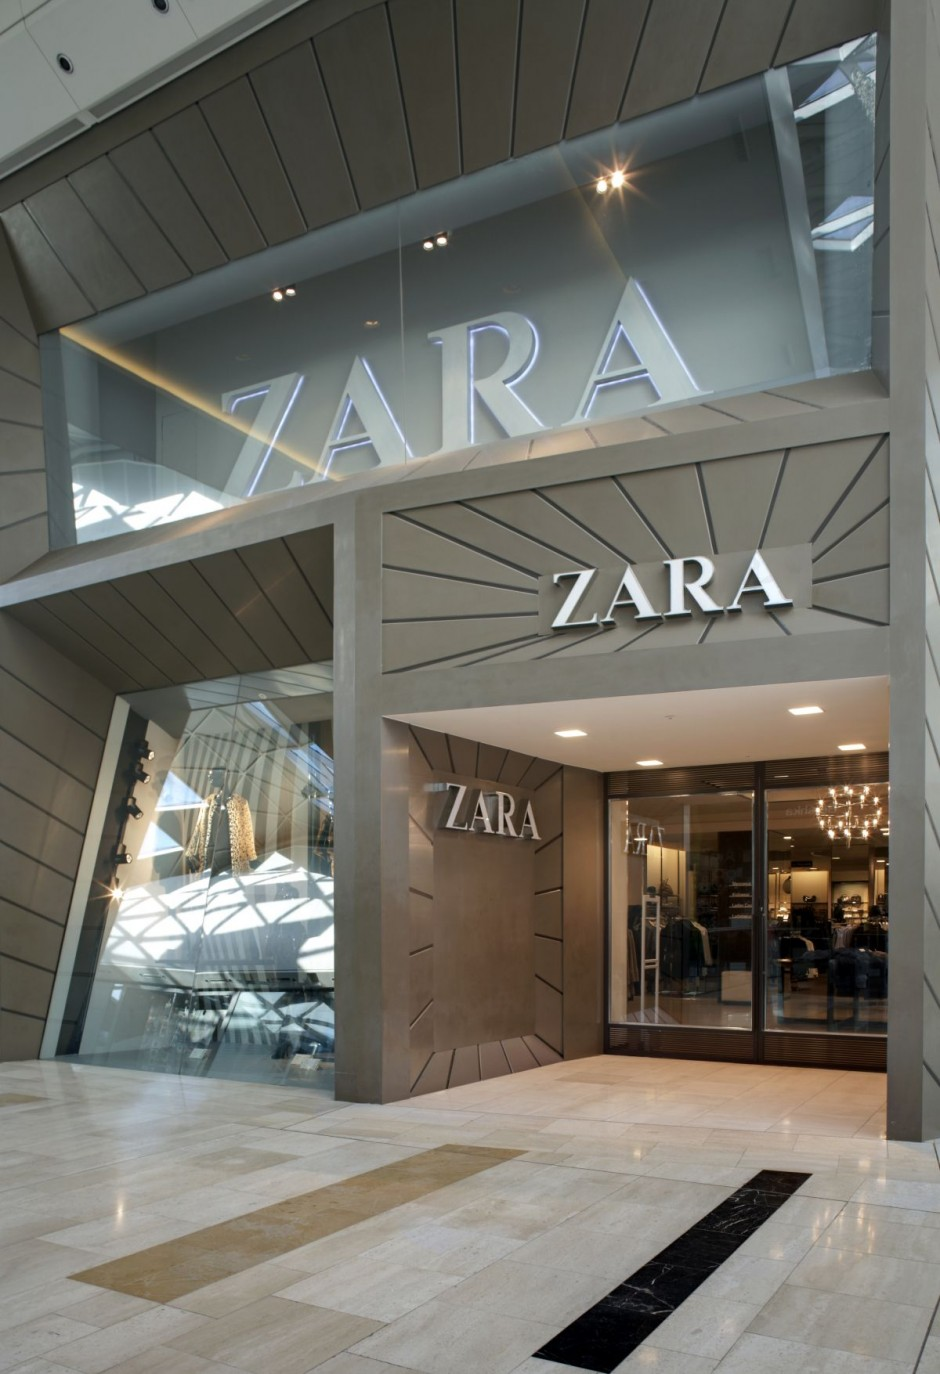 Commercial Architecture – The Facade of the Zara Store at